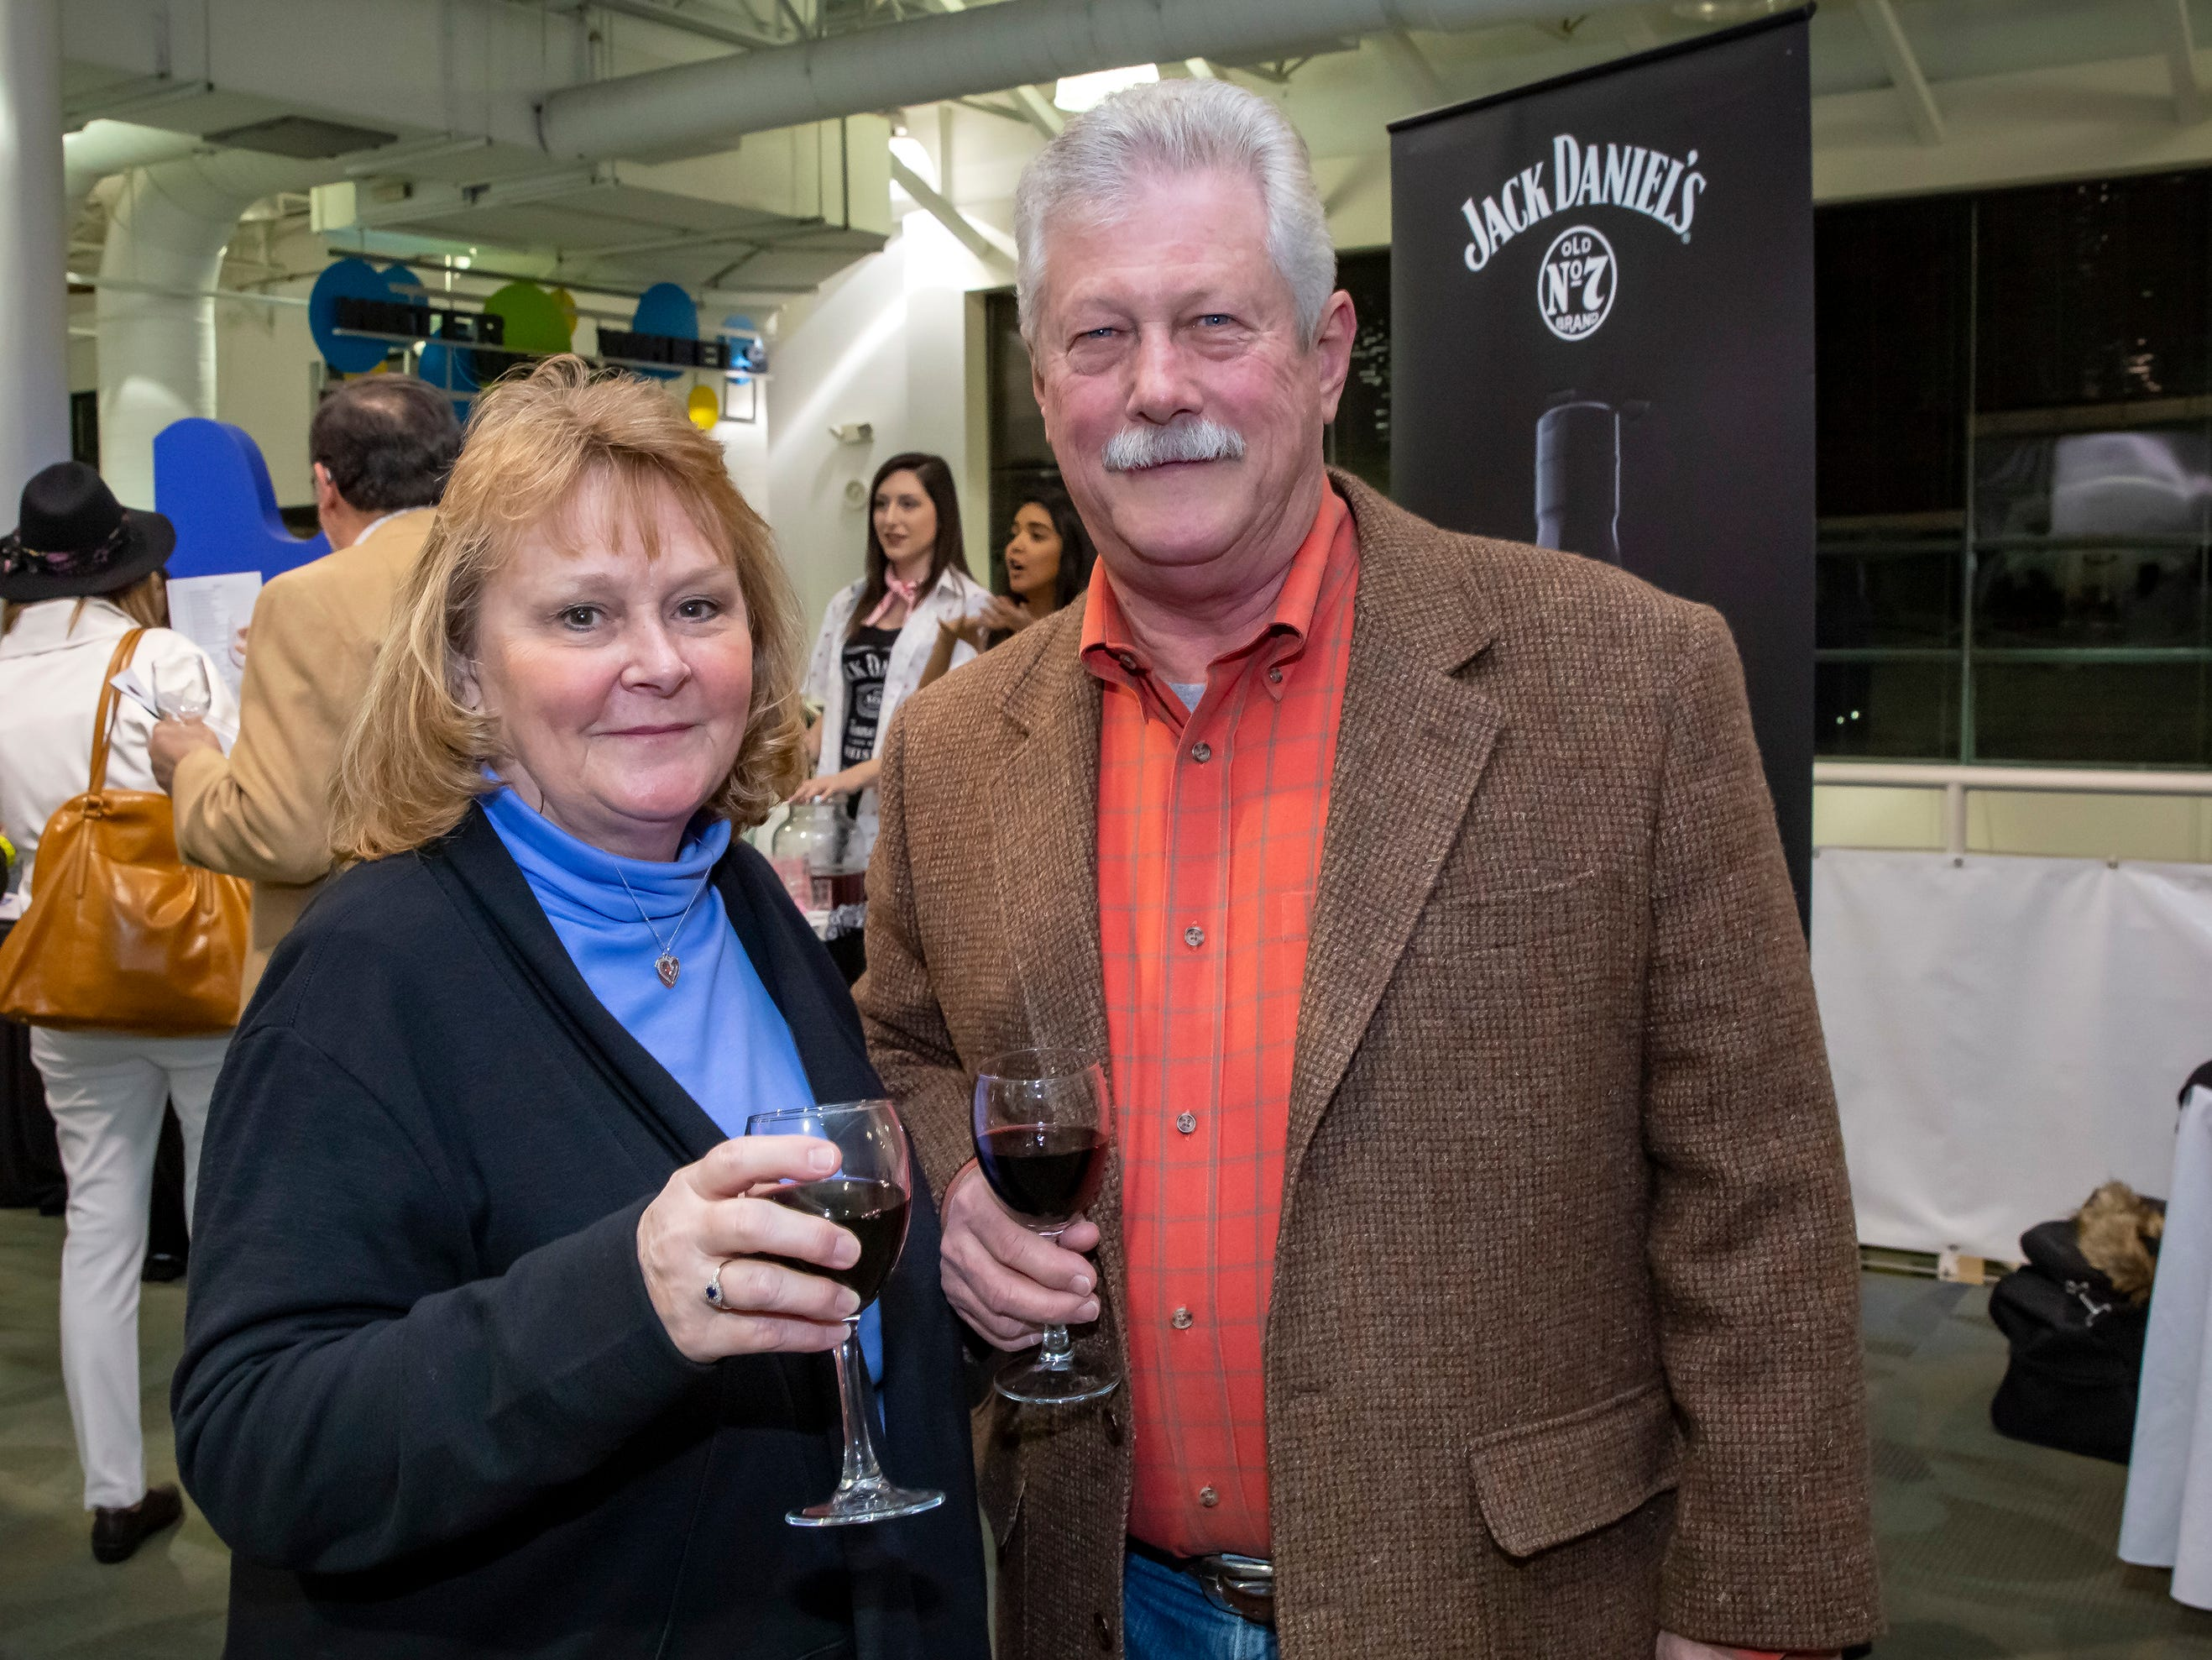 6th annual Wine and Whiskey at the Wetlands event held at the Discovery Center.JIM DAVIS/for the DNJ